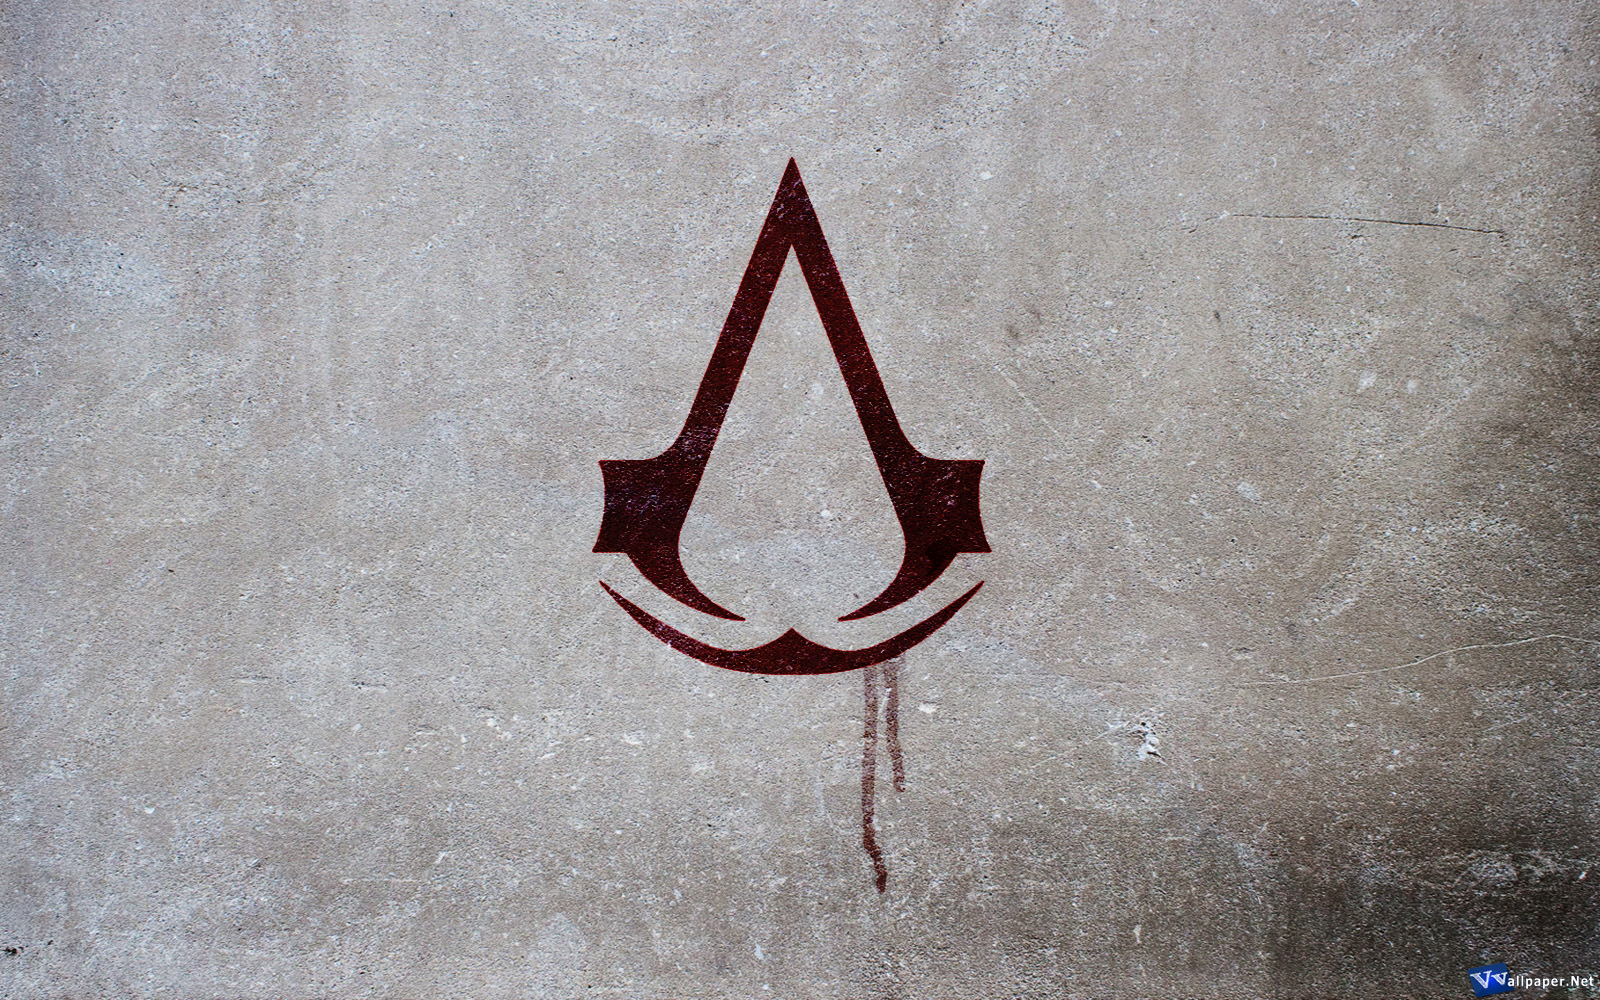 06011915 <b>Assassin'-s Creed</b> Colombia <b>v1</b> by zamusmjolnir on DeviantArt